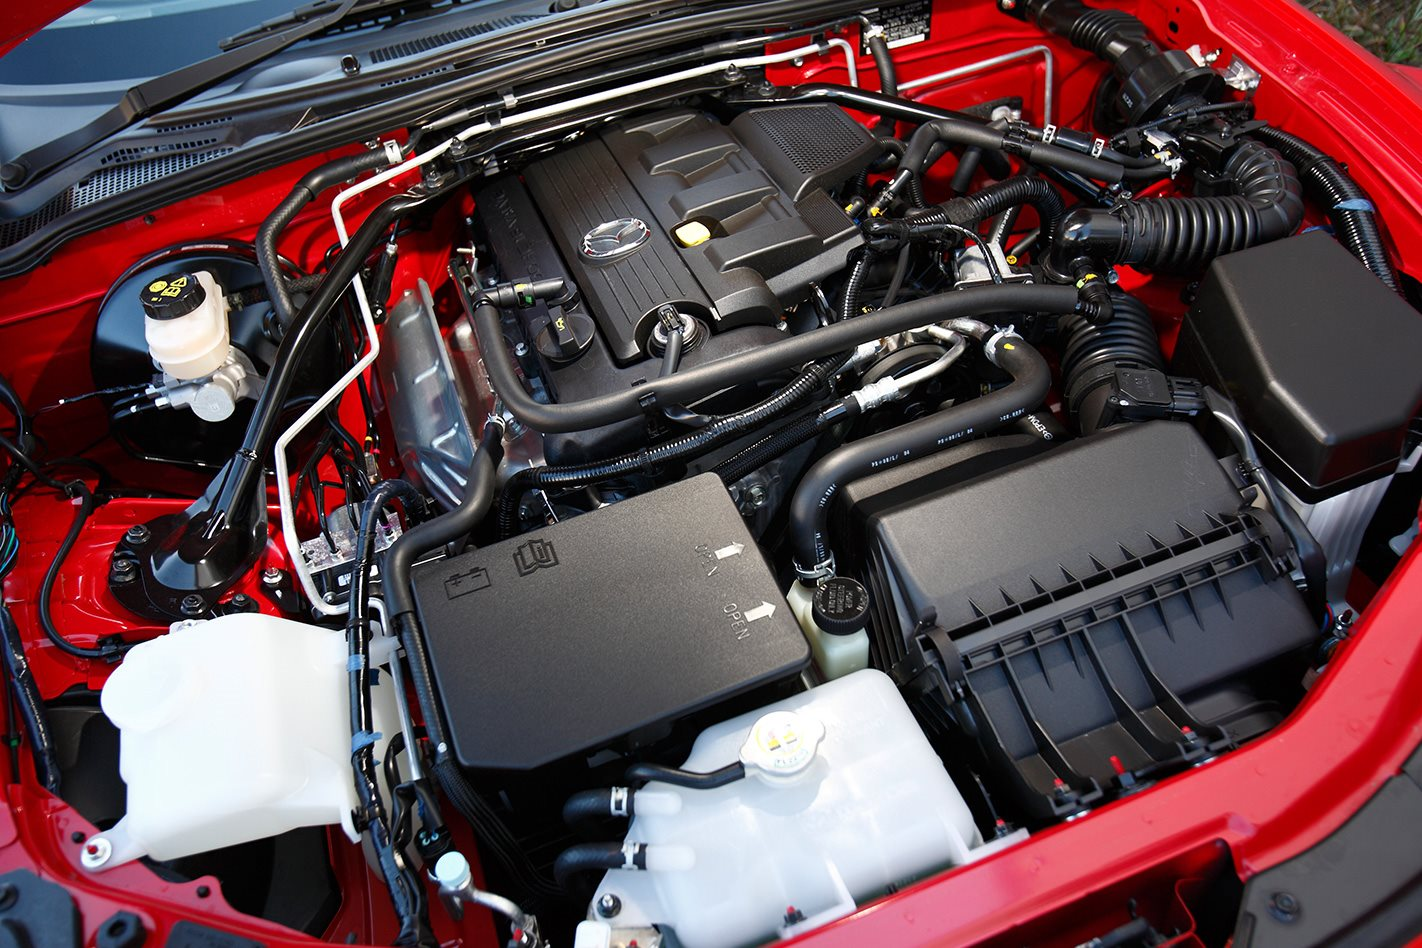 Mazda NC MX-5 engine